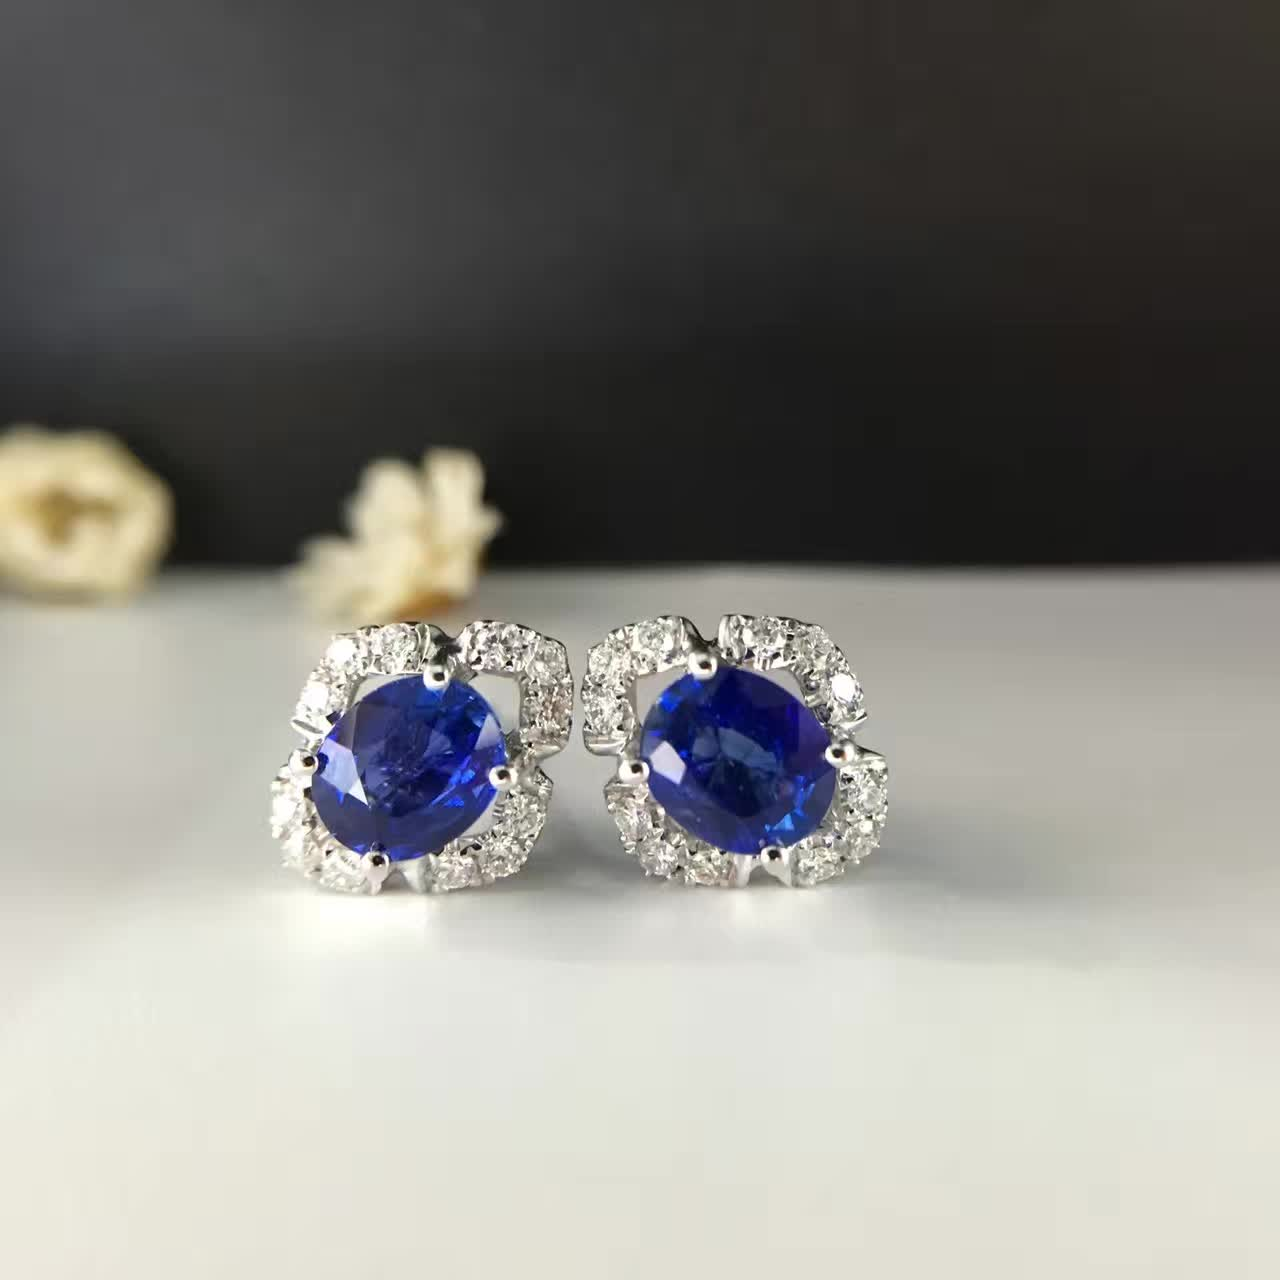 1454ct+0244ct 18k Gold Natural Sapphire Stud Earrings For Women Diamond  Encrusted Free